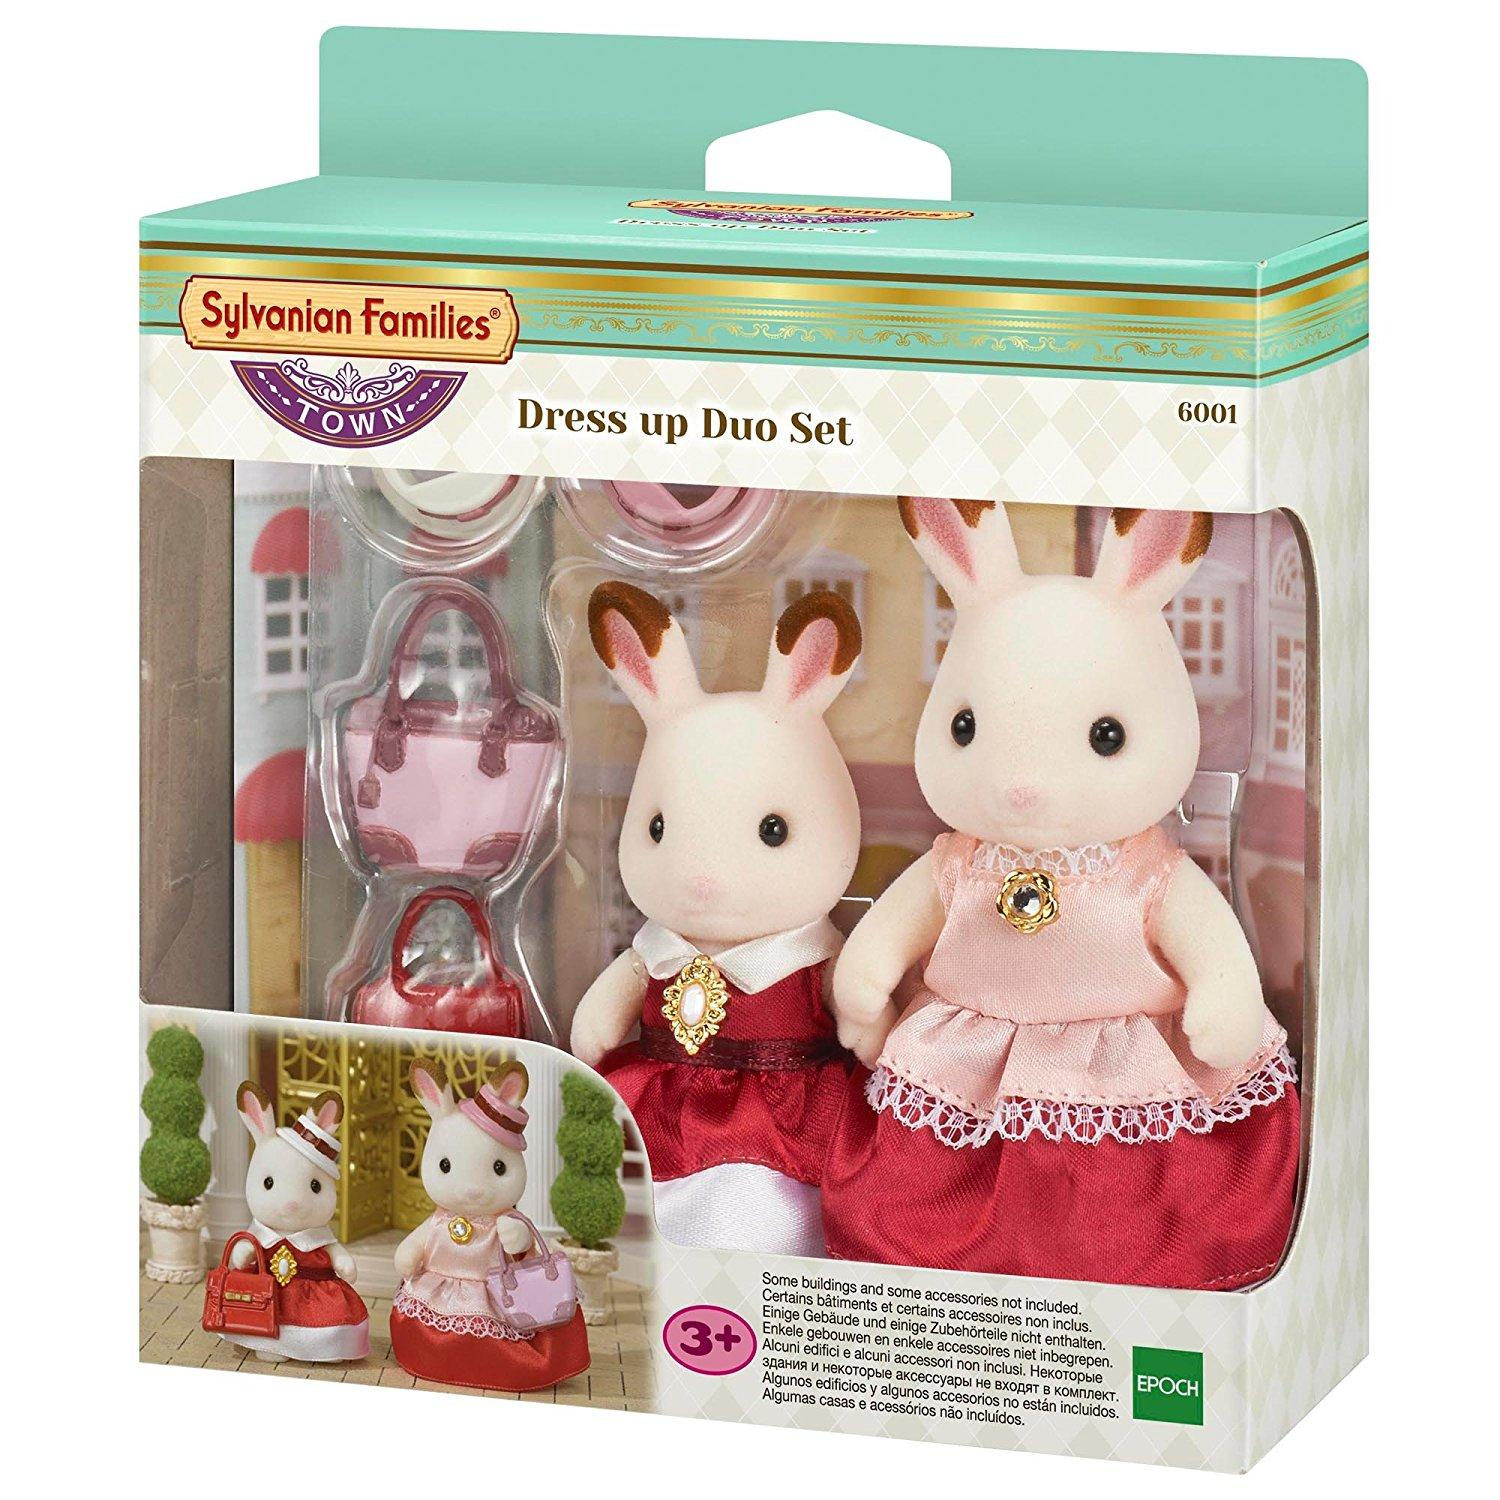 Sylvanian Families Dress Up Duo Set (6001)